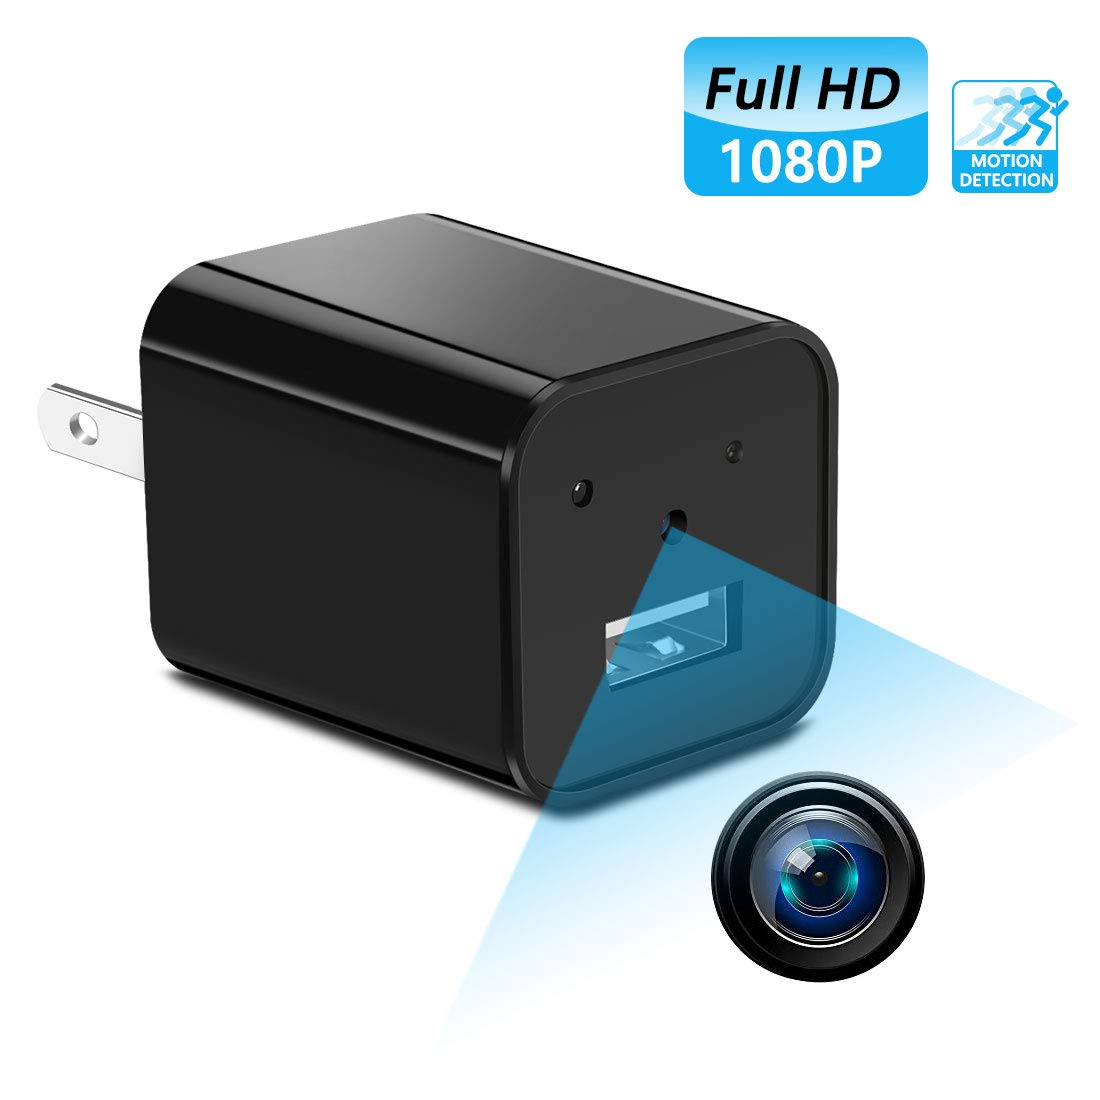 Mini Hidden spy Camera,Full HD 1080P Hidden spy Camera Charger with Video Record and Motion Detection for Home,Office Use | No Wi-Fi Needed by Supoggy